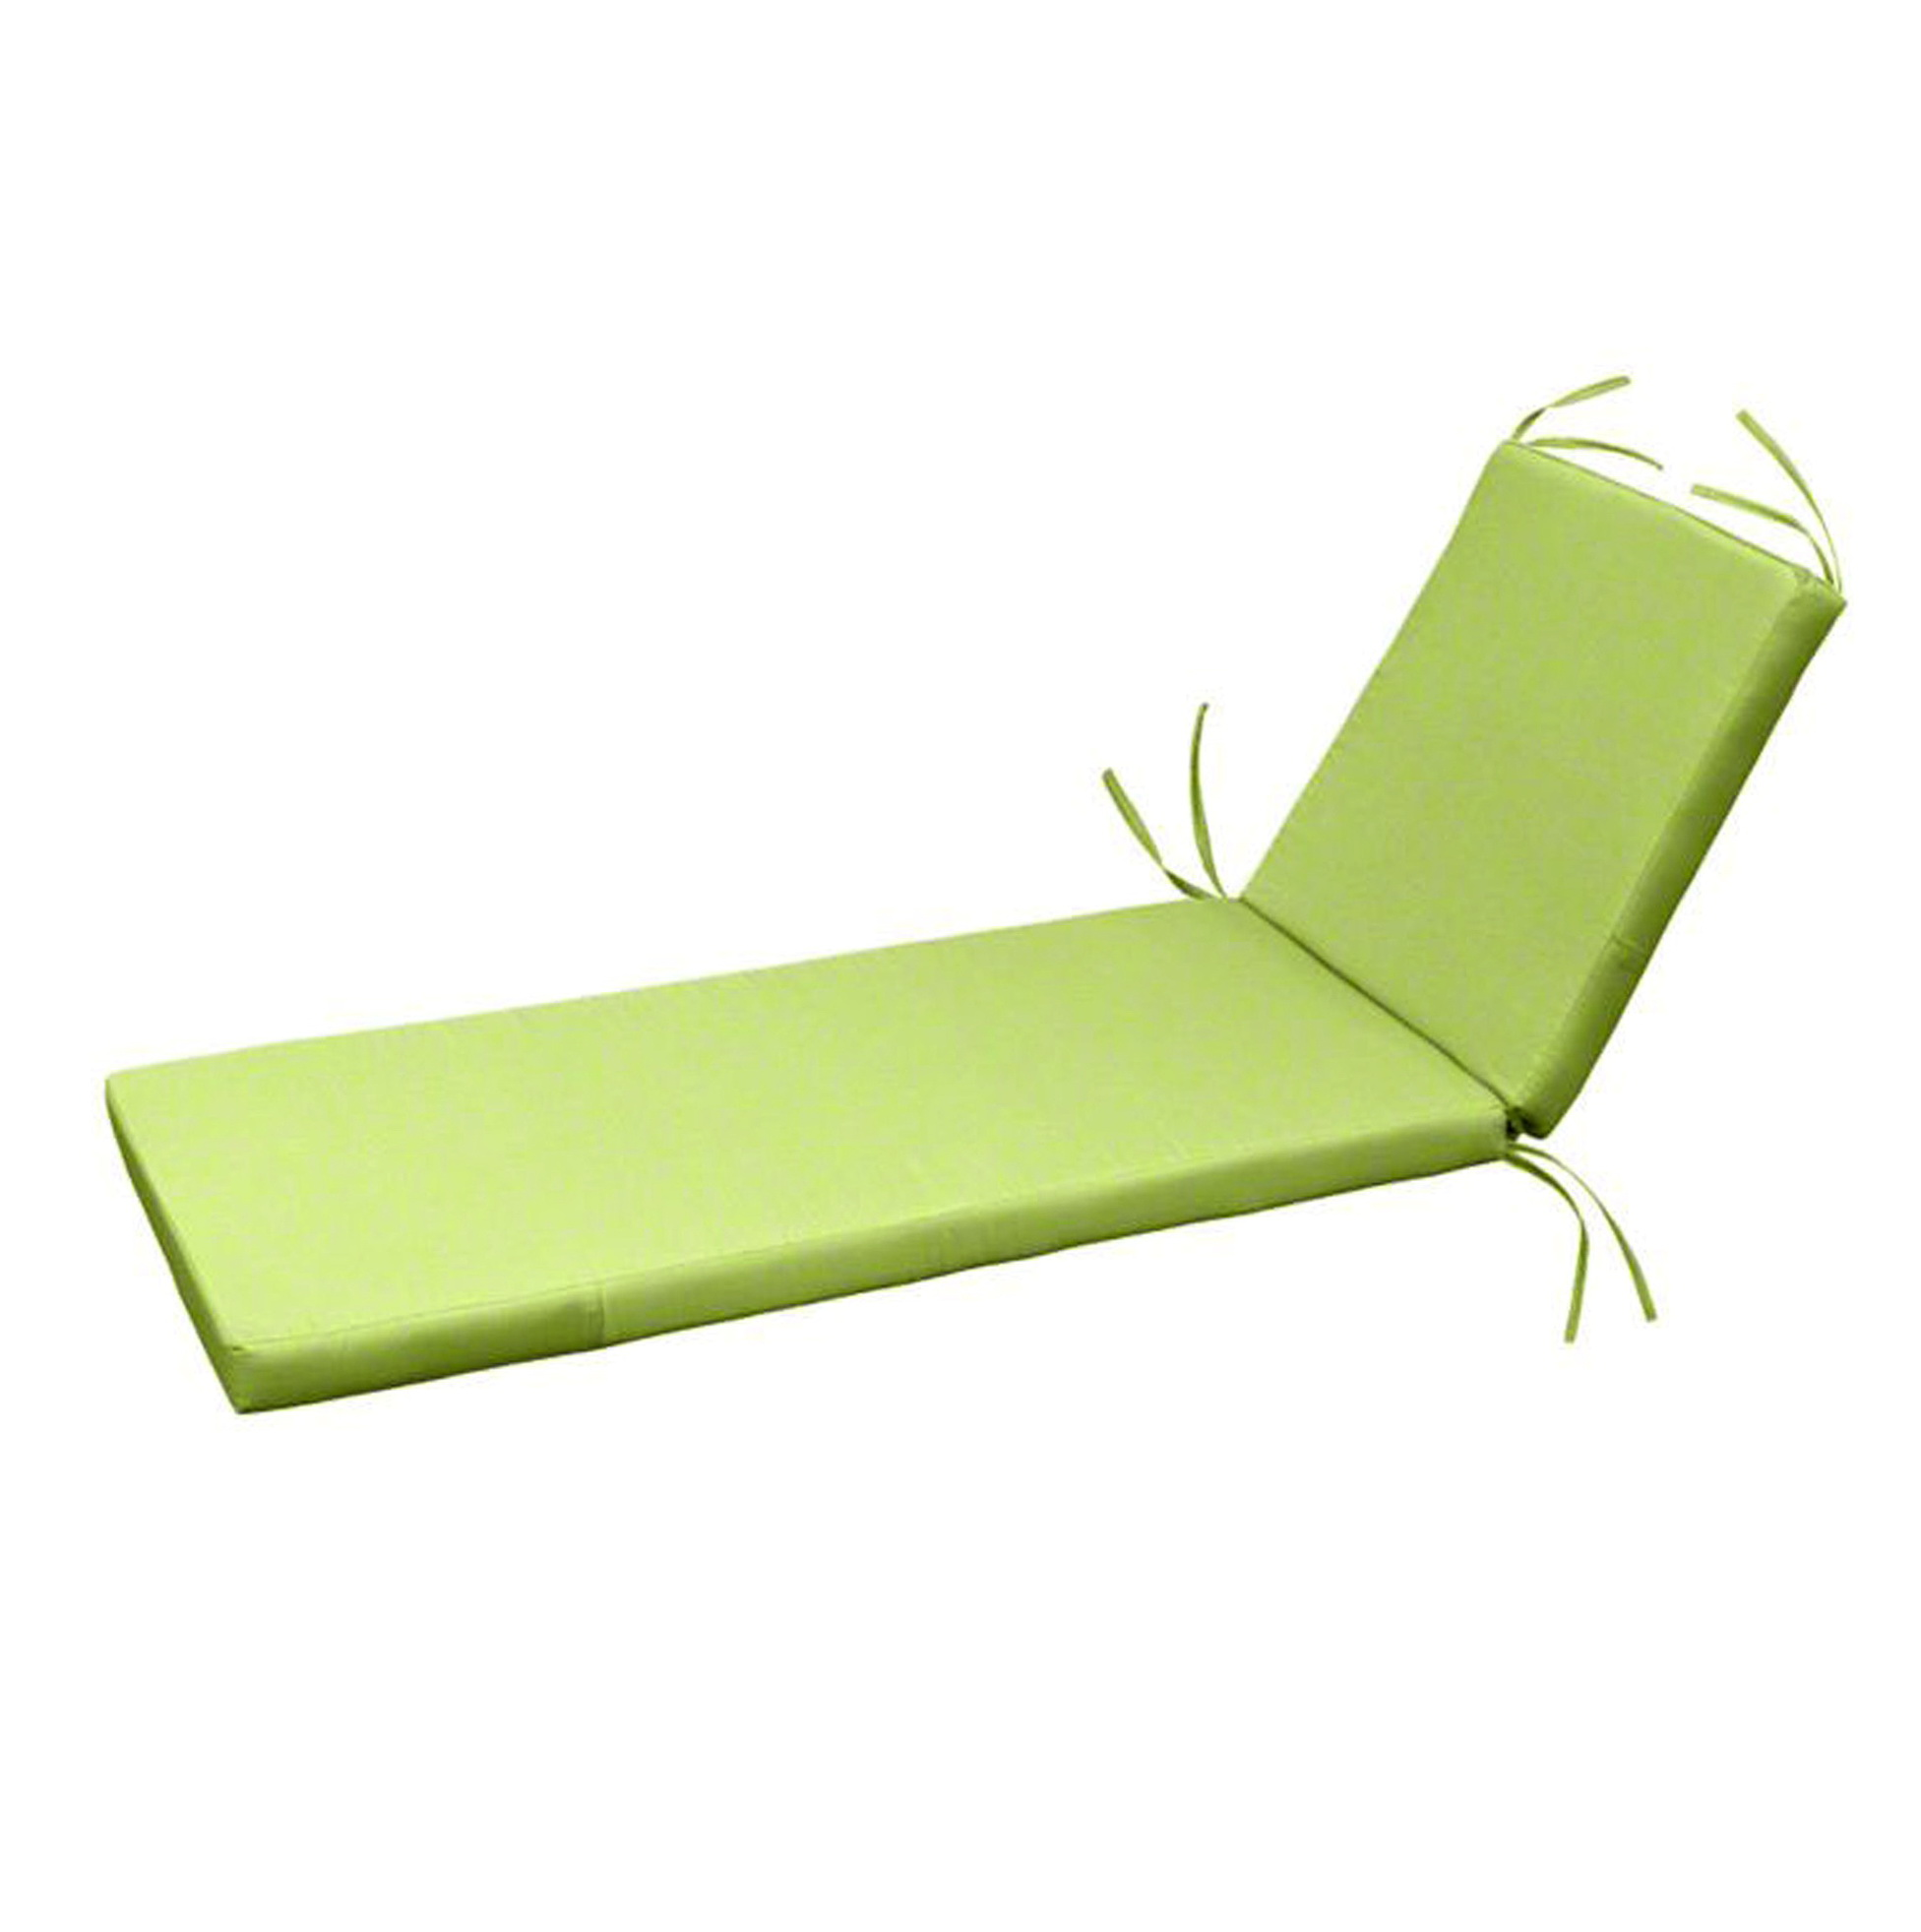 Chaise lounge cushions on clearance home design ideas for Chaise longue cushions